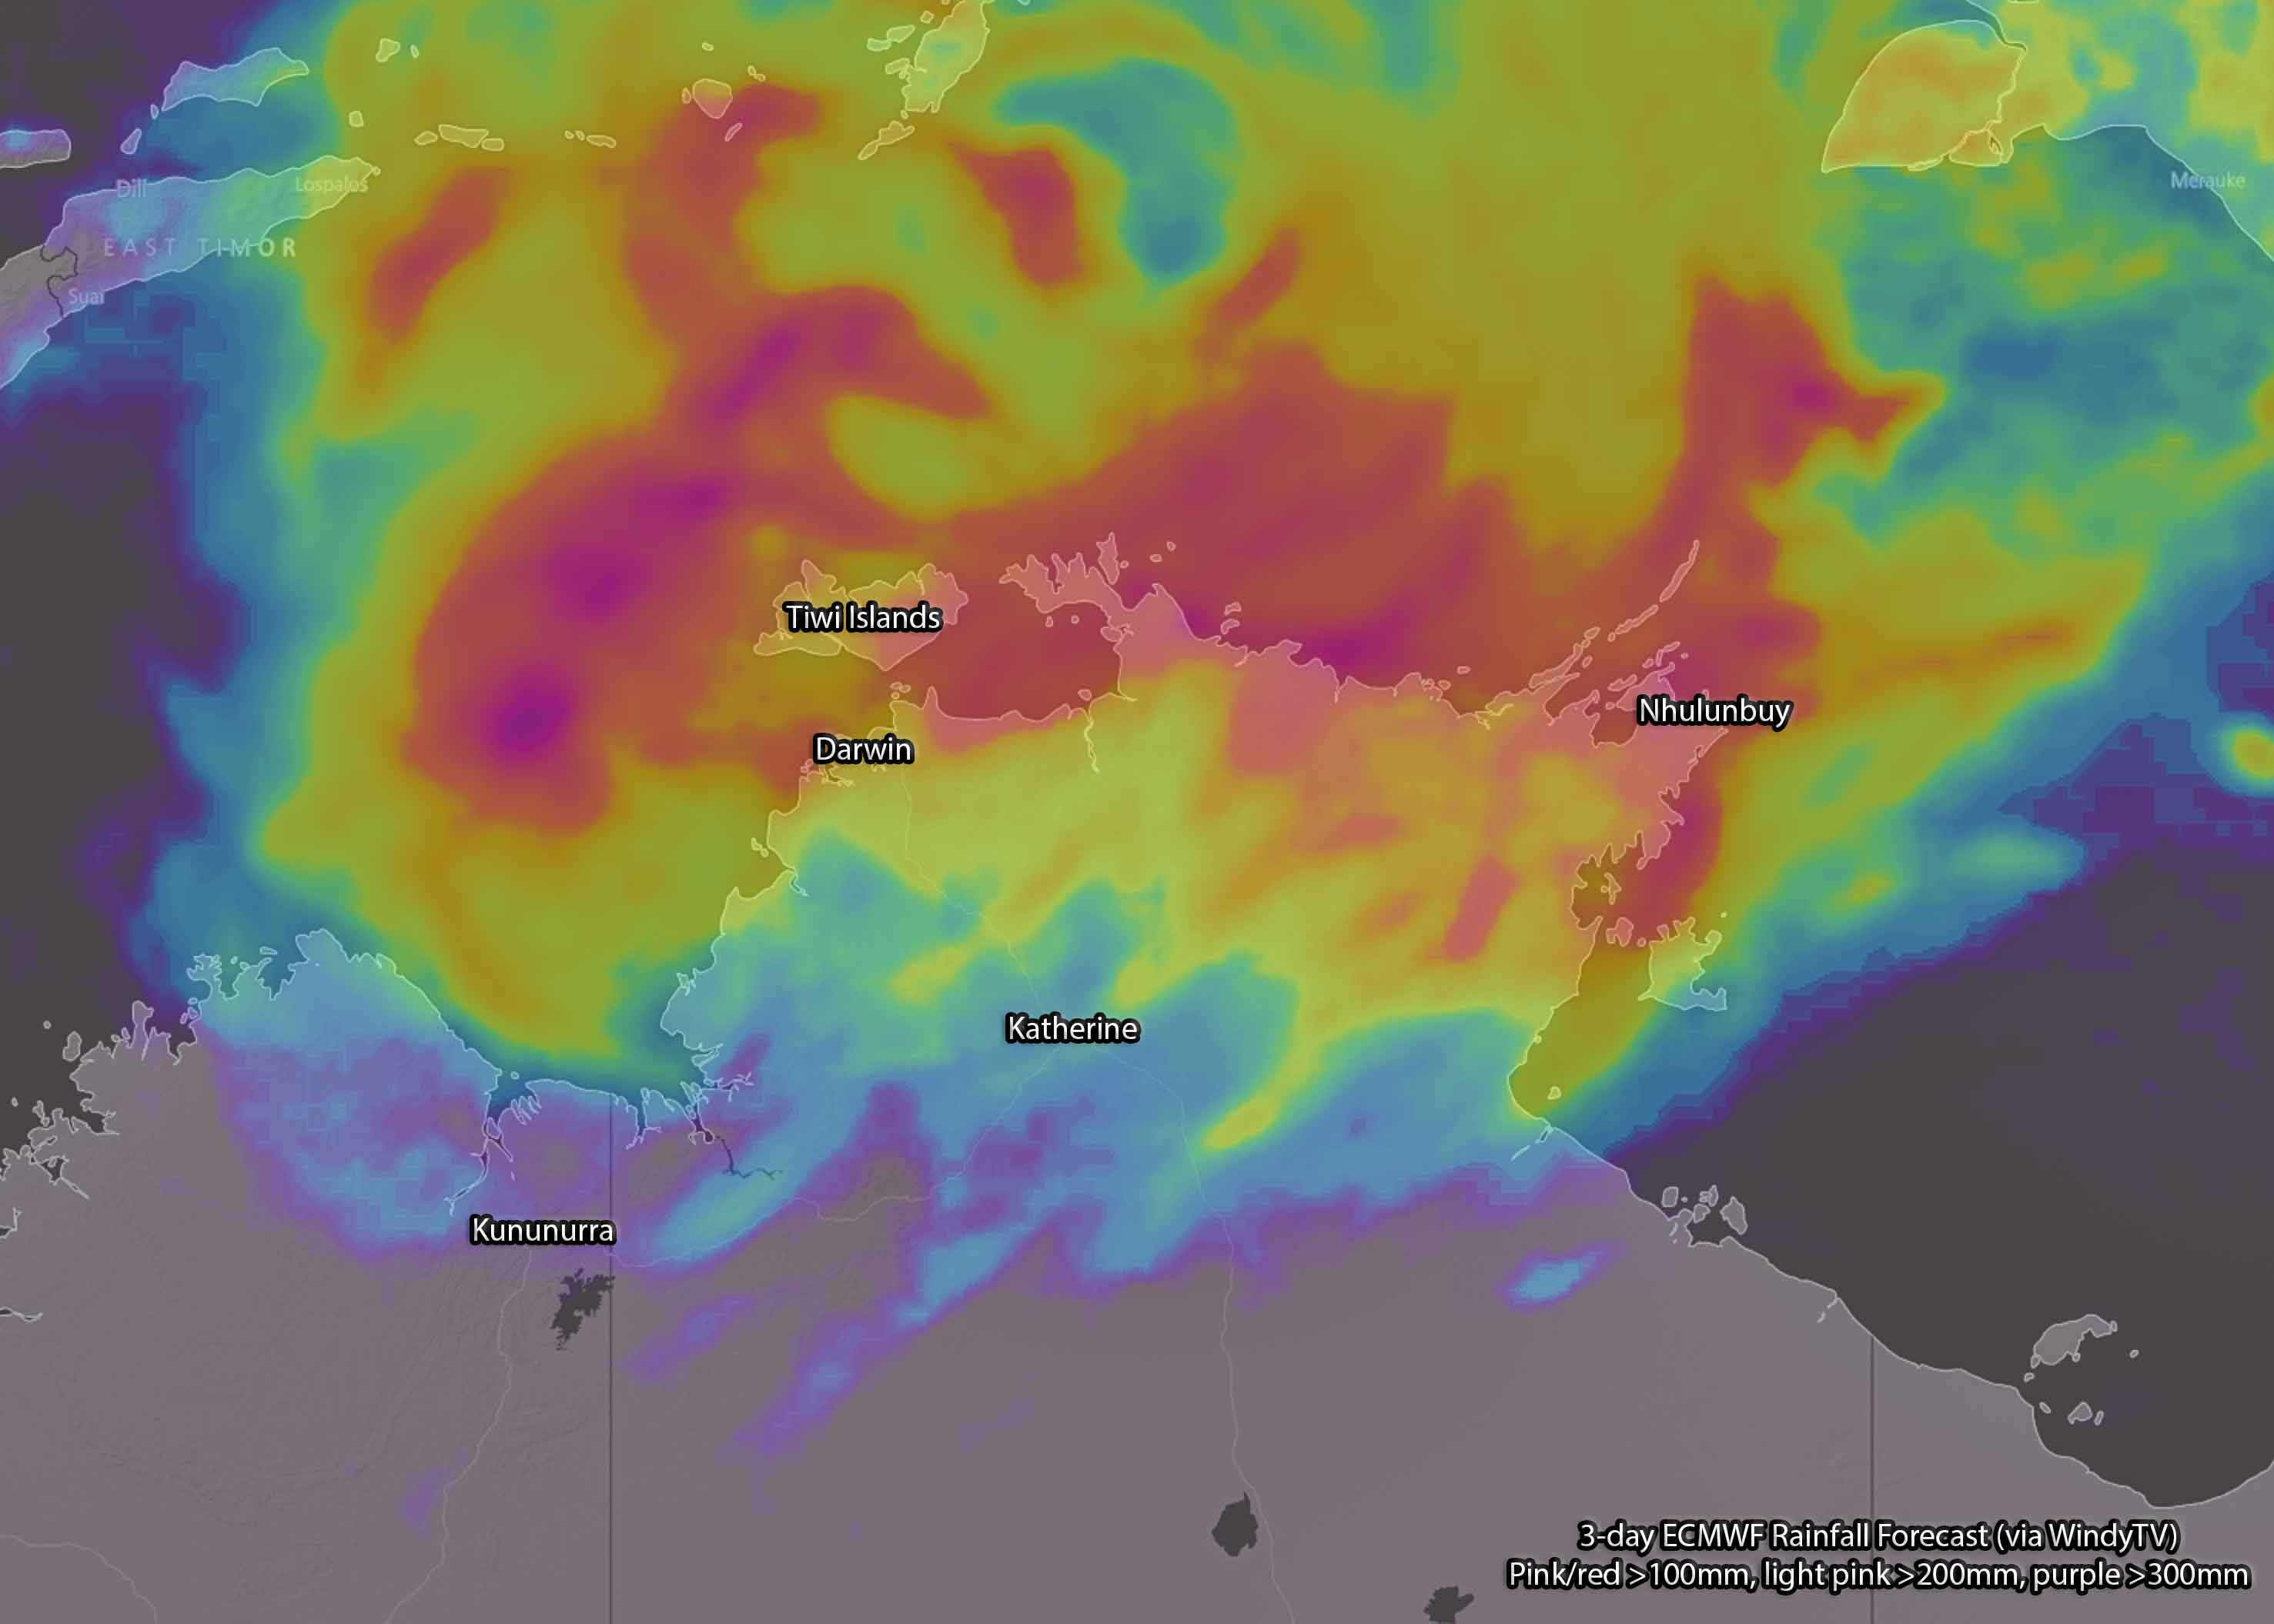 Forecast 3-day rainfall via ECMWF (WindyTV) - red/pink >100mm, light pink >200mm, purple >300mm